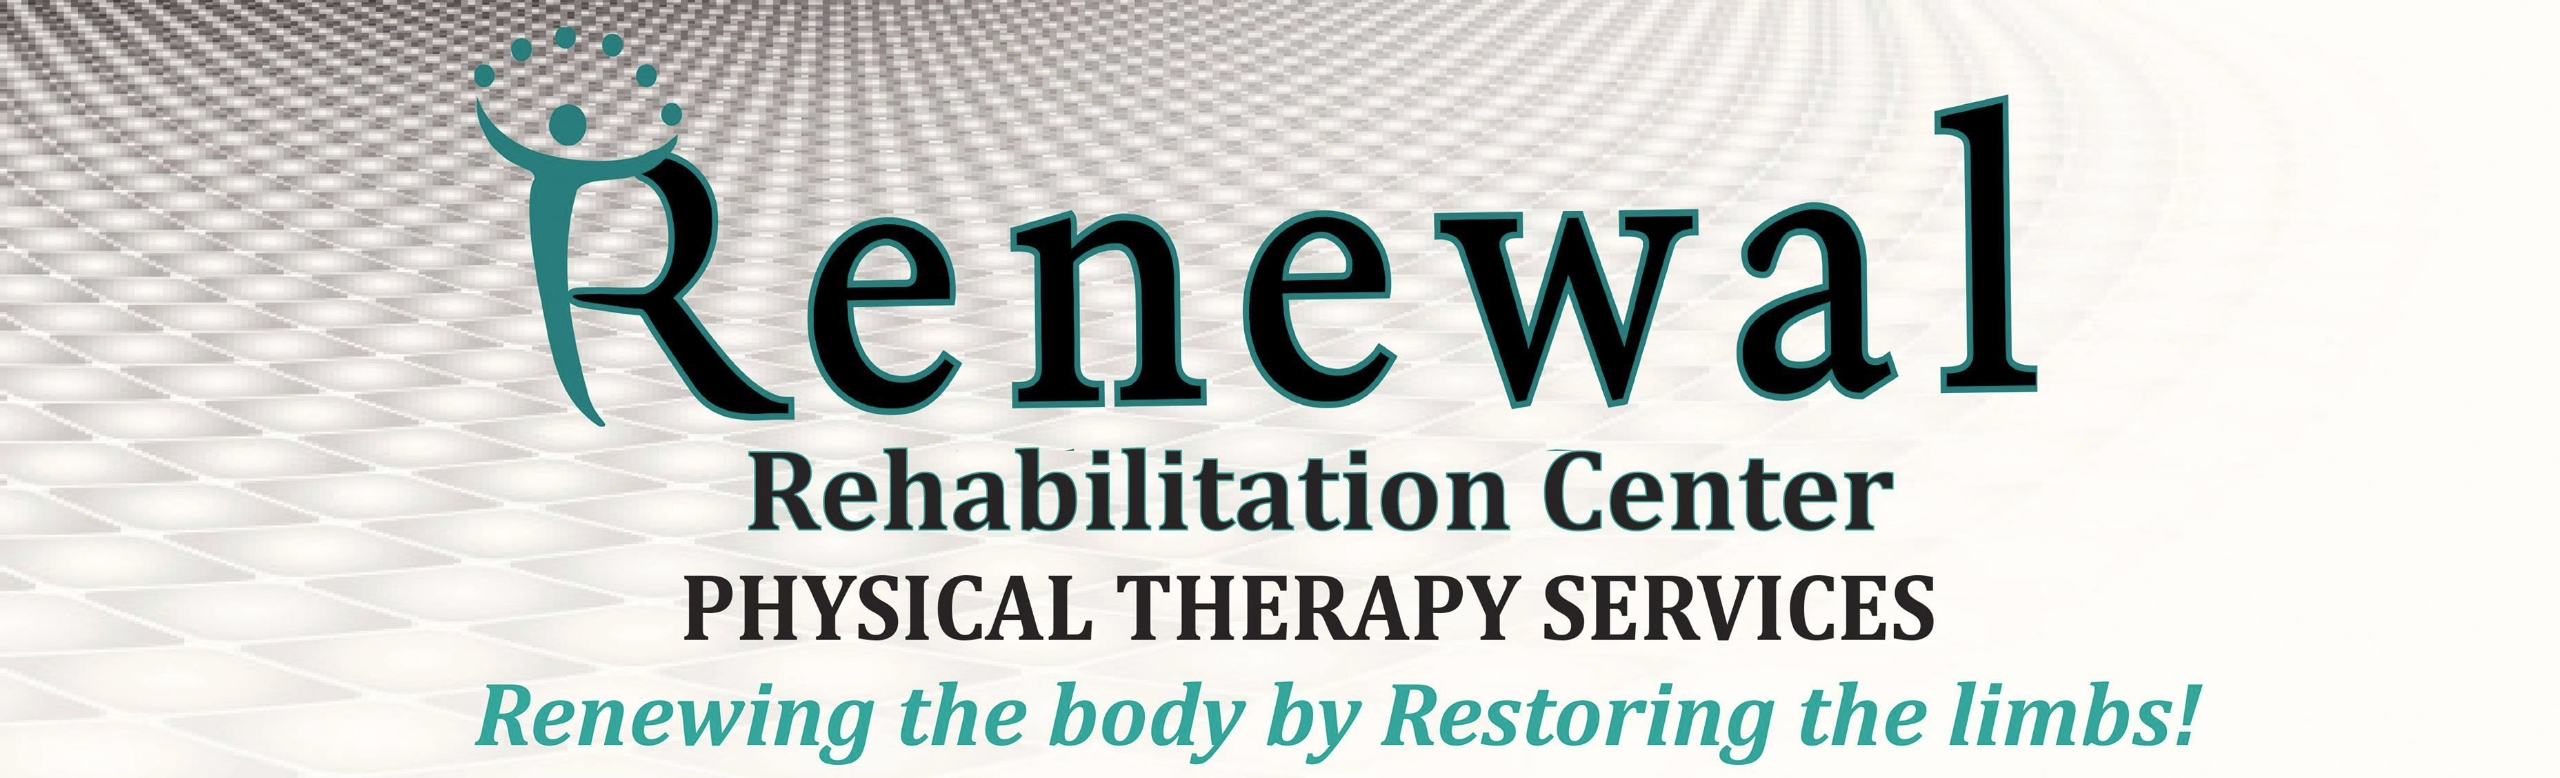 Renewal Rehabilitation Center (@renewalrc) Cover Image